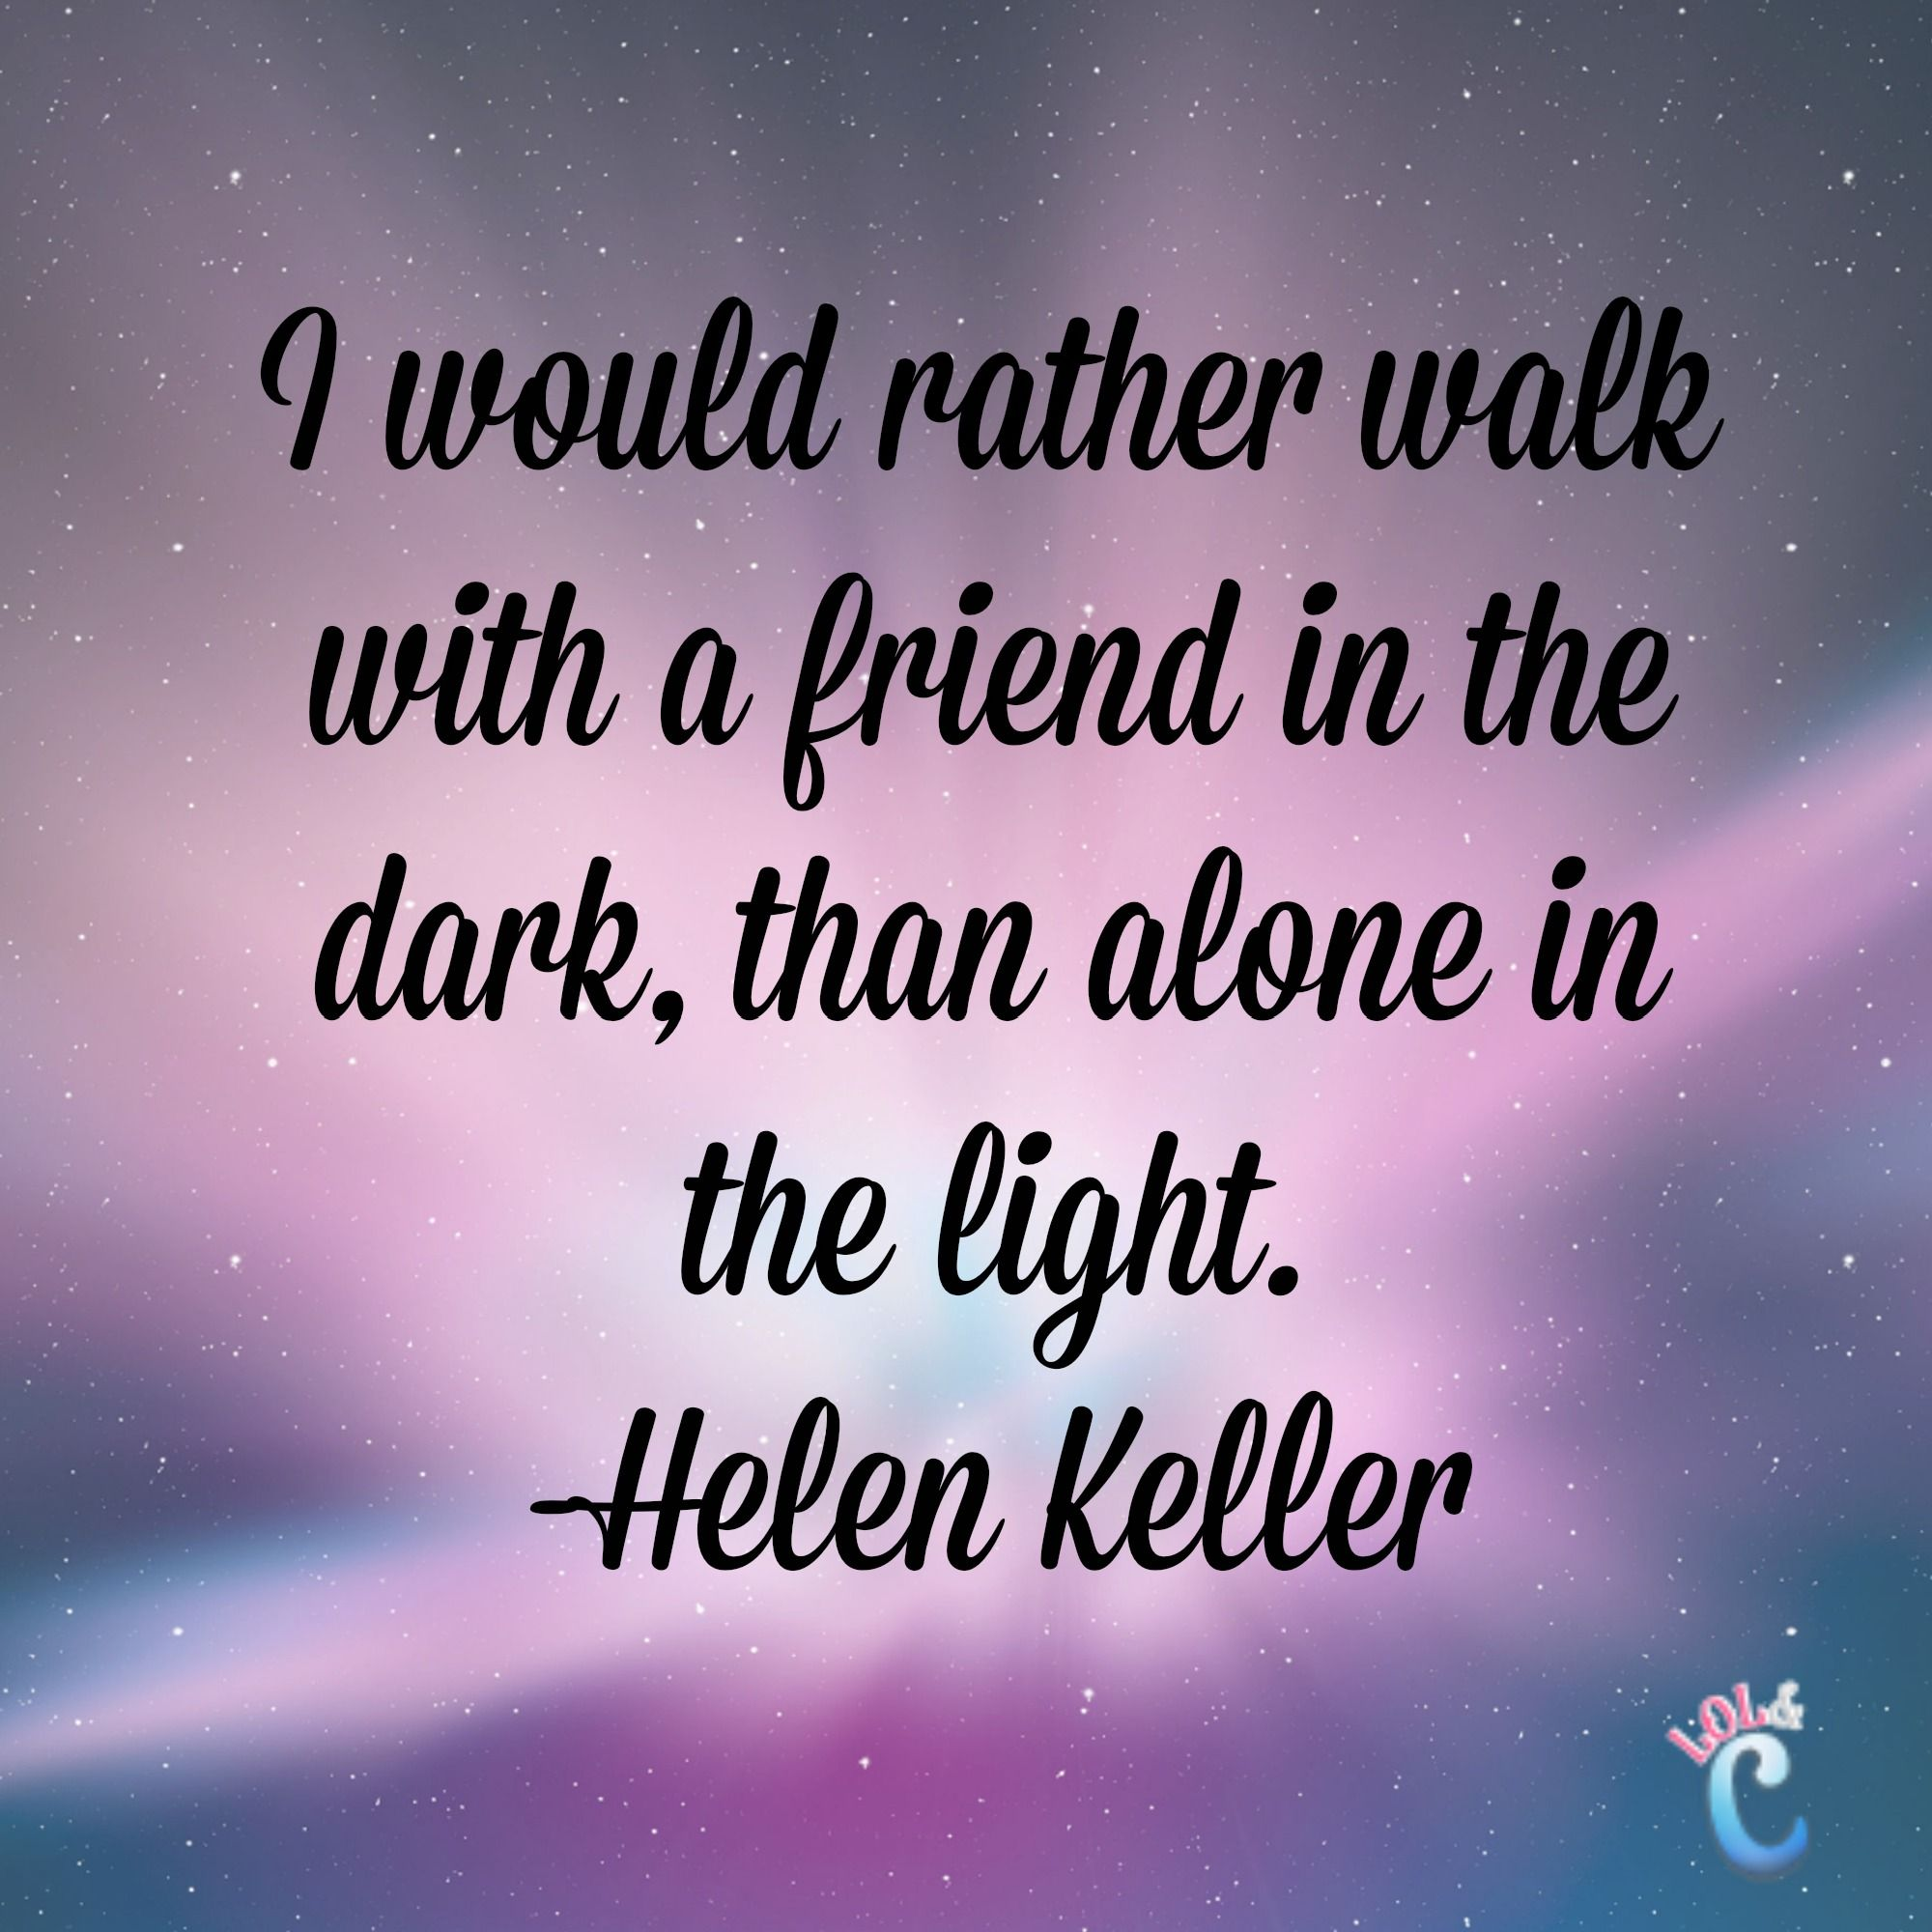 Friend Quotes Alone: Inspiring Quotes About Friendship